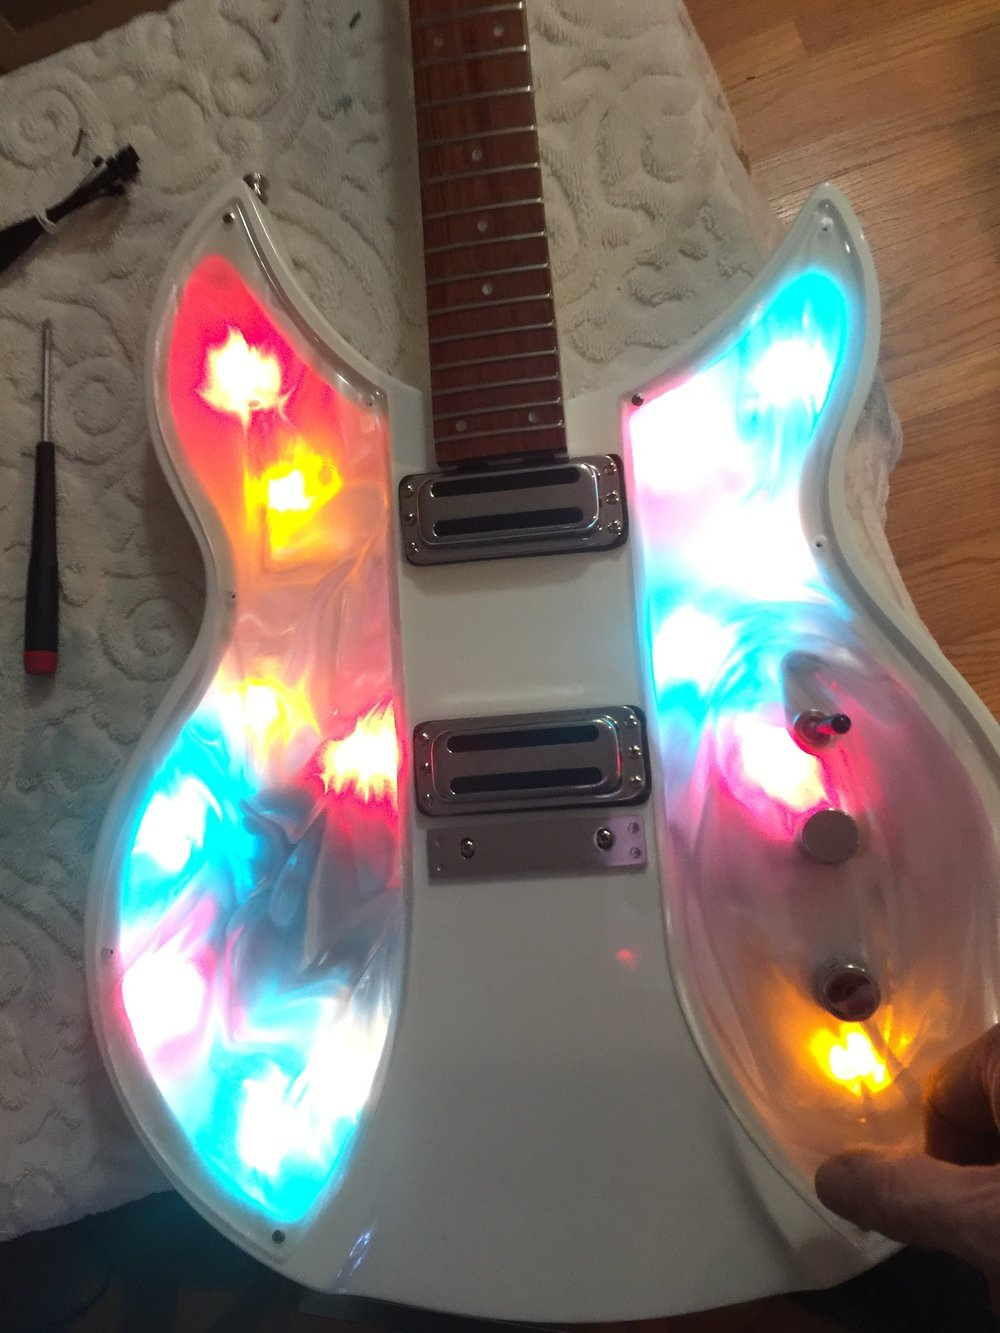 TESTING THE LEDS IN DAYLIGHT